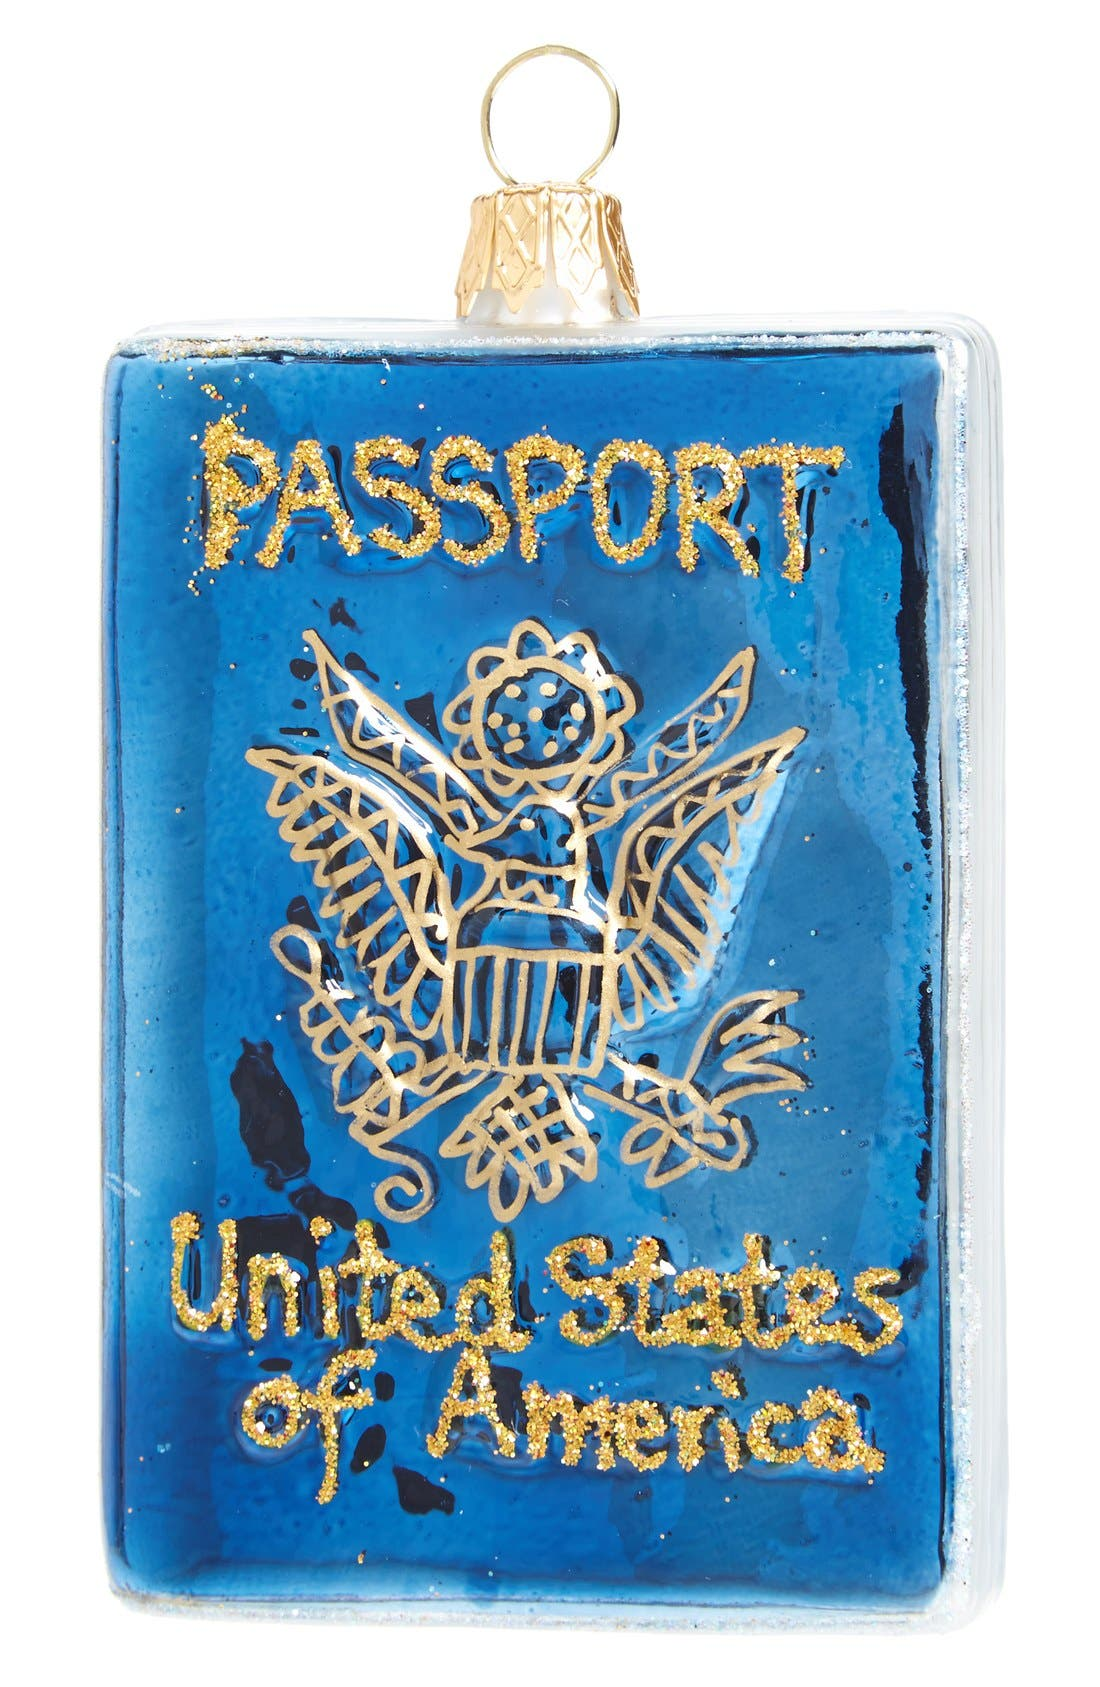 Celebrate your love of travel this holiday with a glass passport ornament handcrafted by Polish artisans and dusted with goldtone glitter for a sparkly finish. Style Name: Nordstrom At Home \\\'Usa Passport\\\' Ornament. Style Number: 1126144. Available in stores.